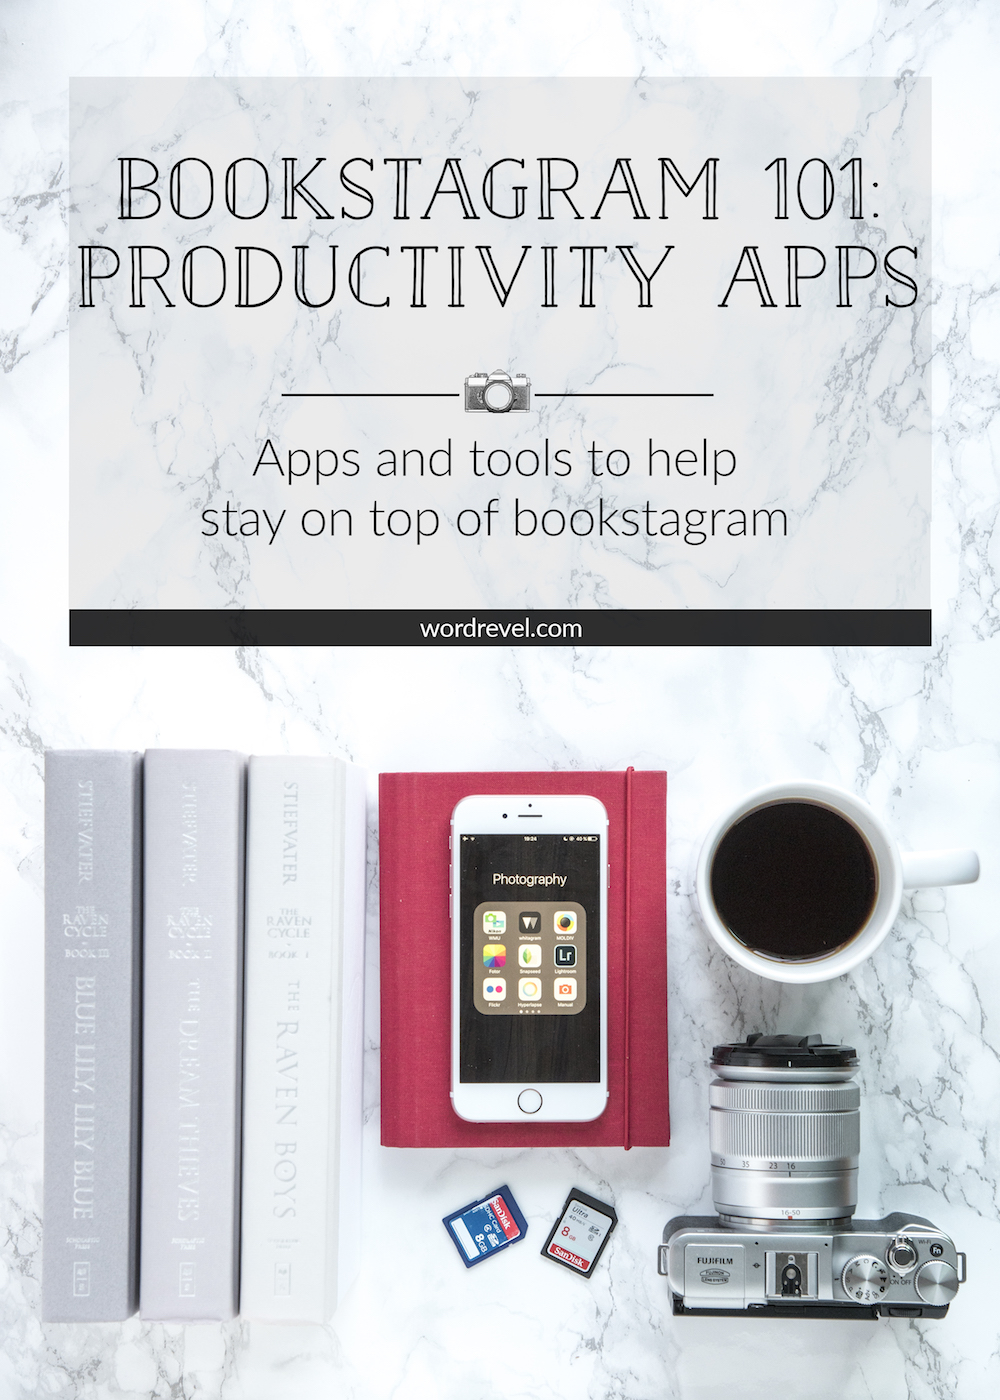 Bookstagram 101: Productivity Apps